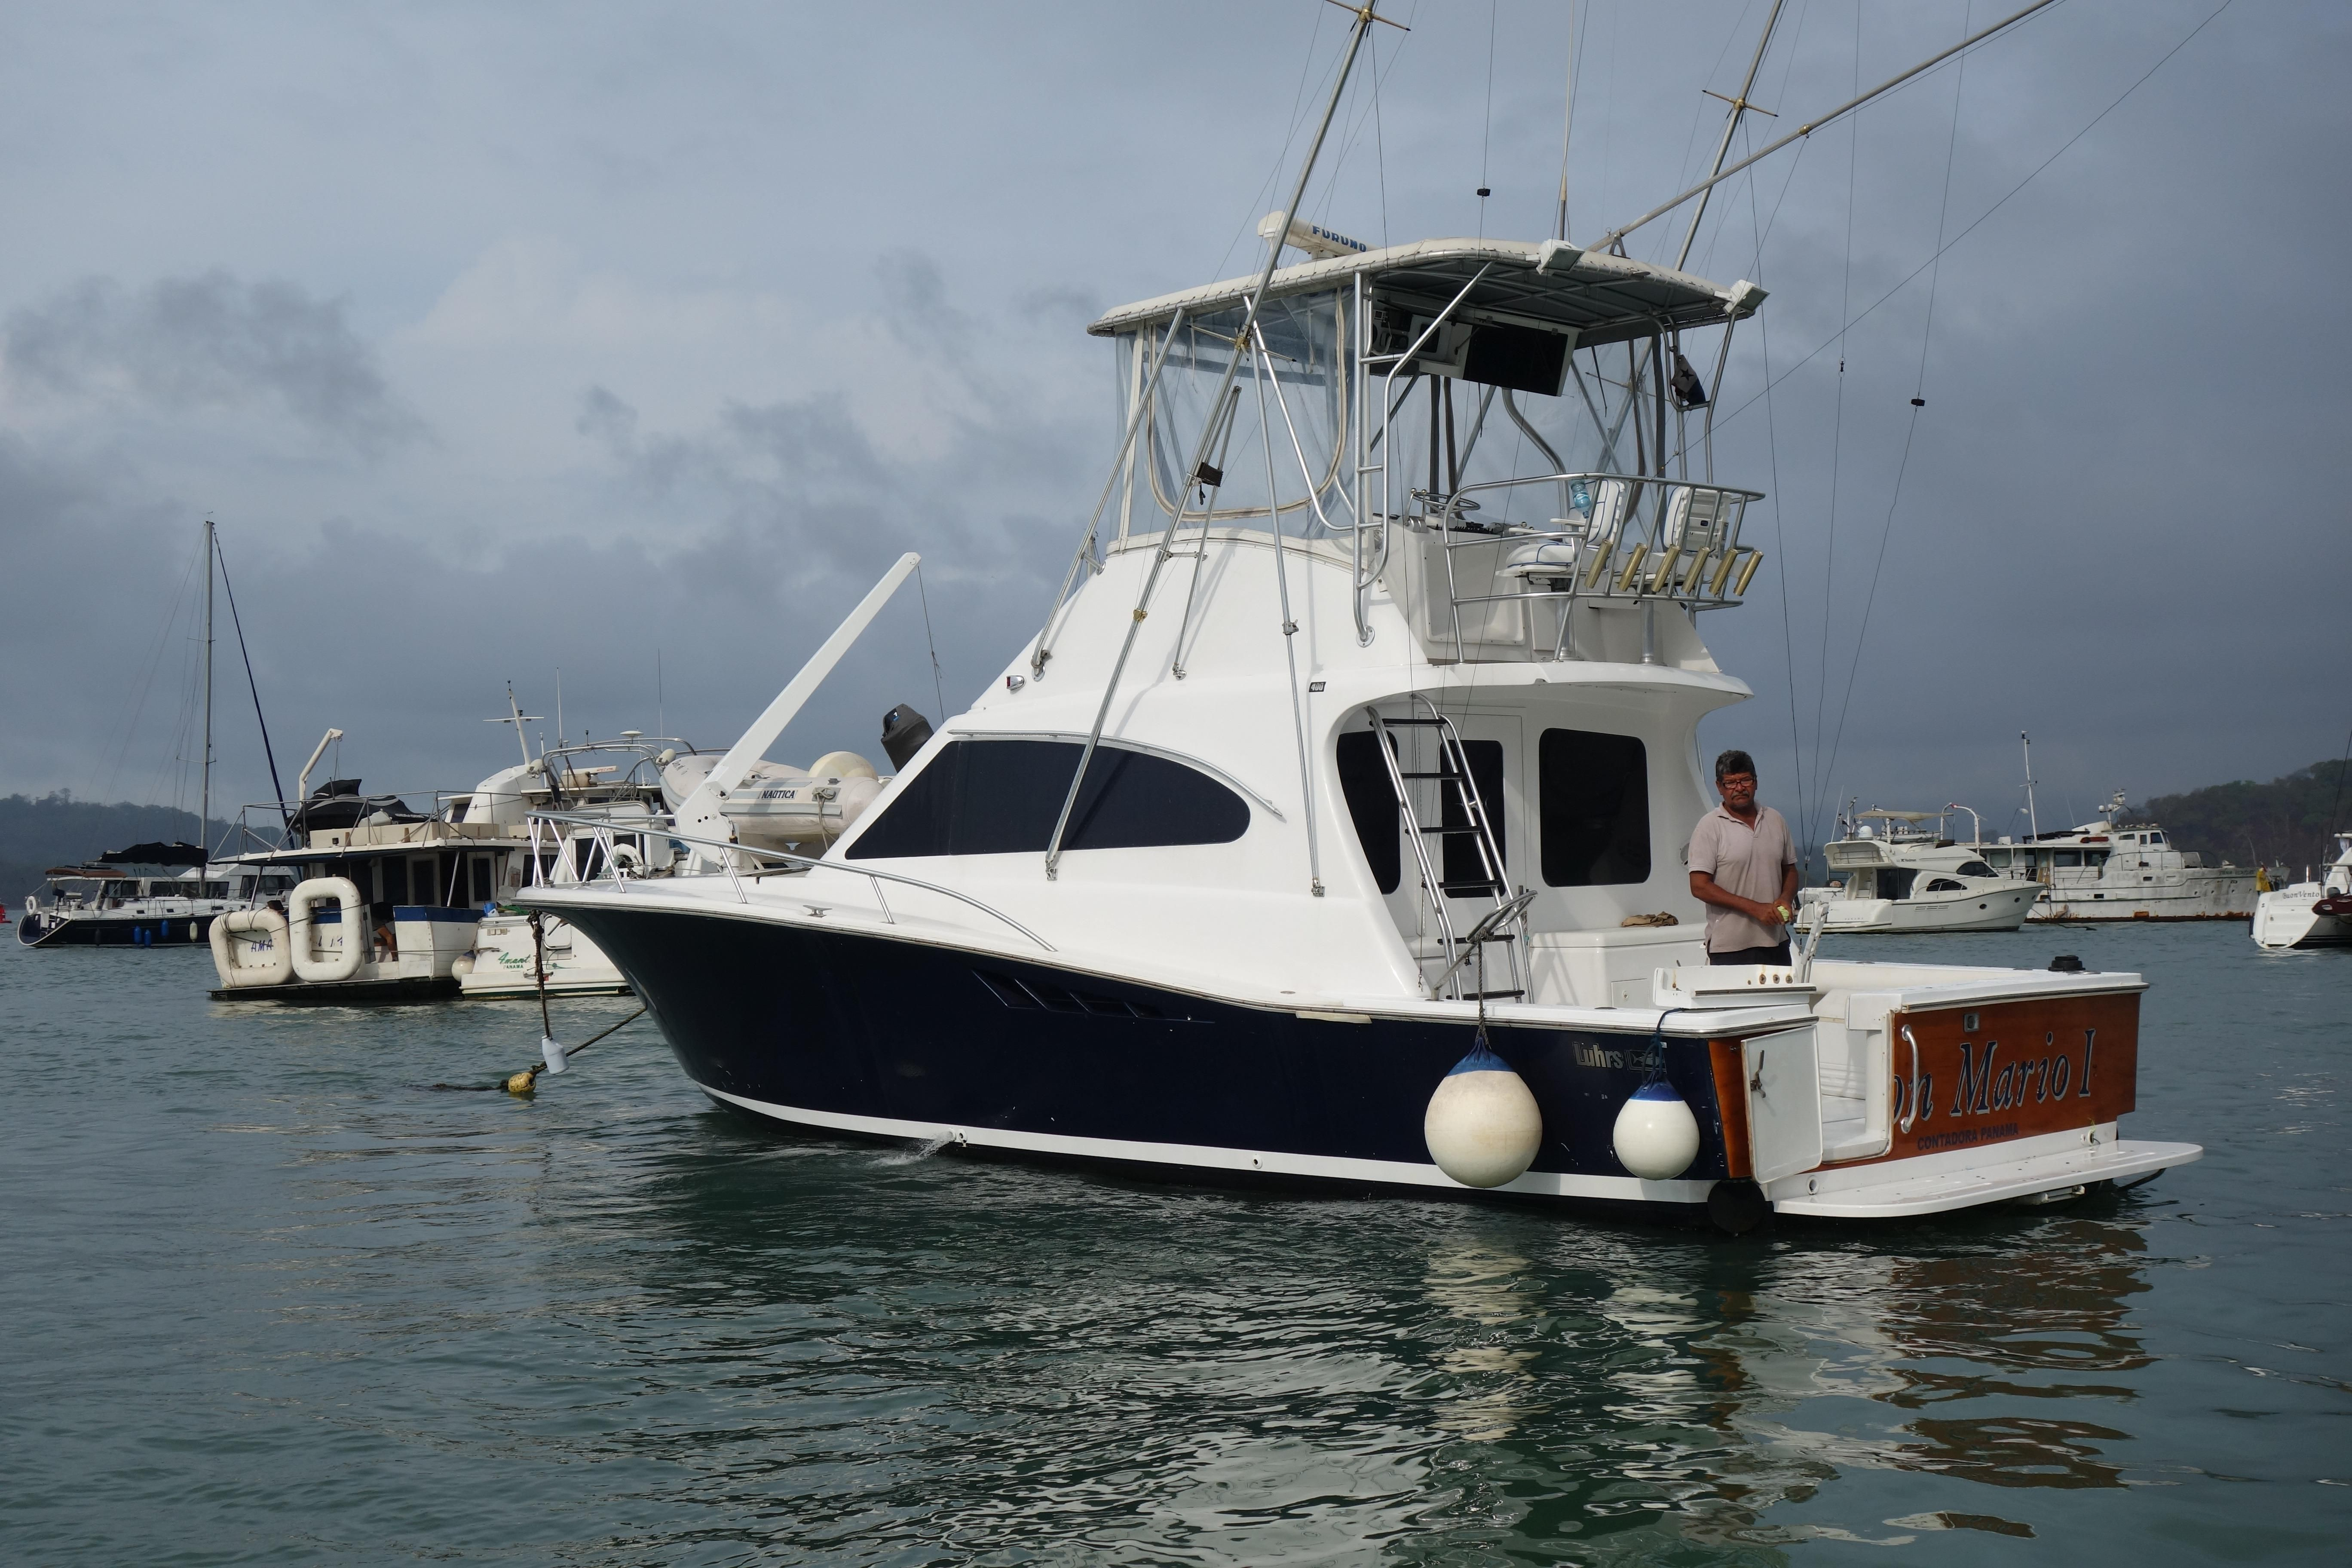 Diesel Generator For Sale >> 2000 Luhrs 400 Convertible Power Boat For Sale - www.yachtworld.com